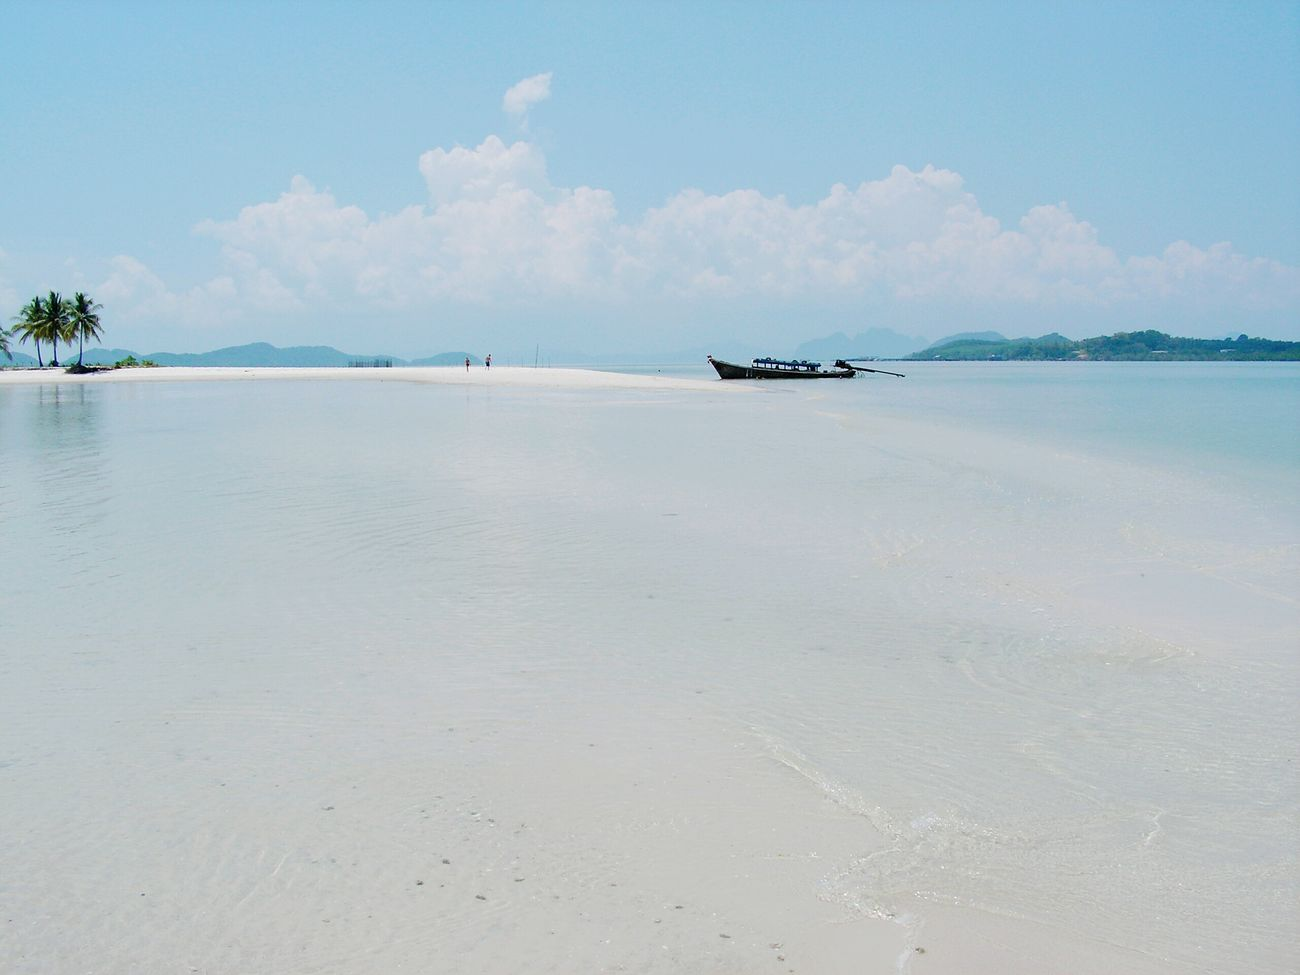 Edge Of The World Sand & Sea Andaman Sea Island Unlimited Boat On The Beach Lonely Boat Peace And Quiet Desertedisland Life Is A Beach